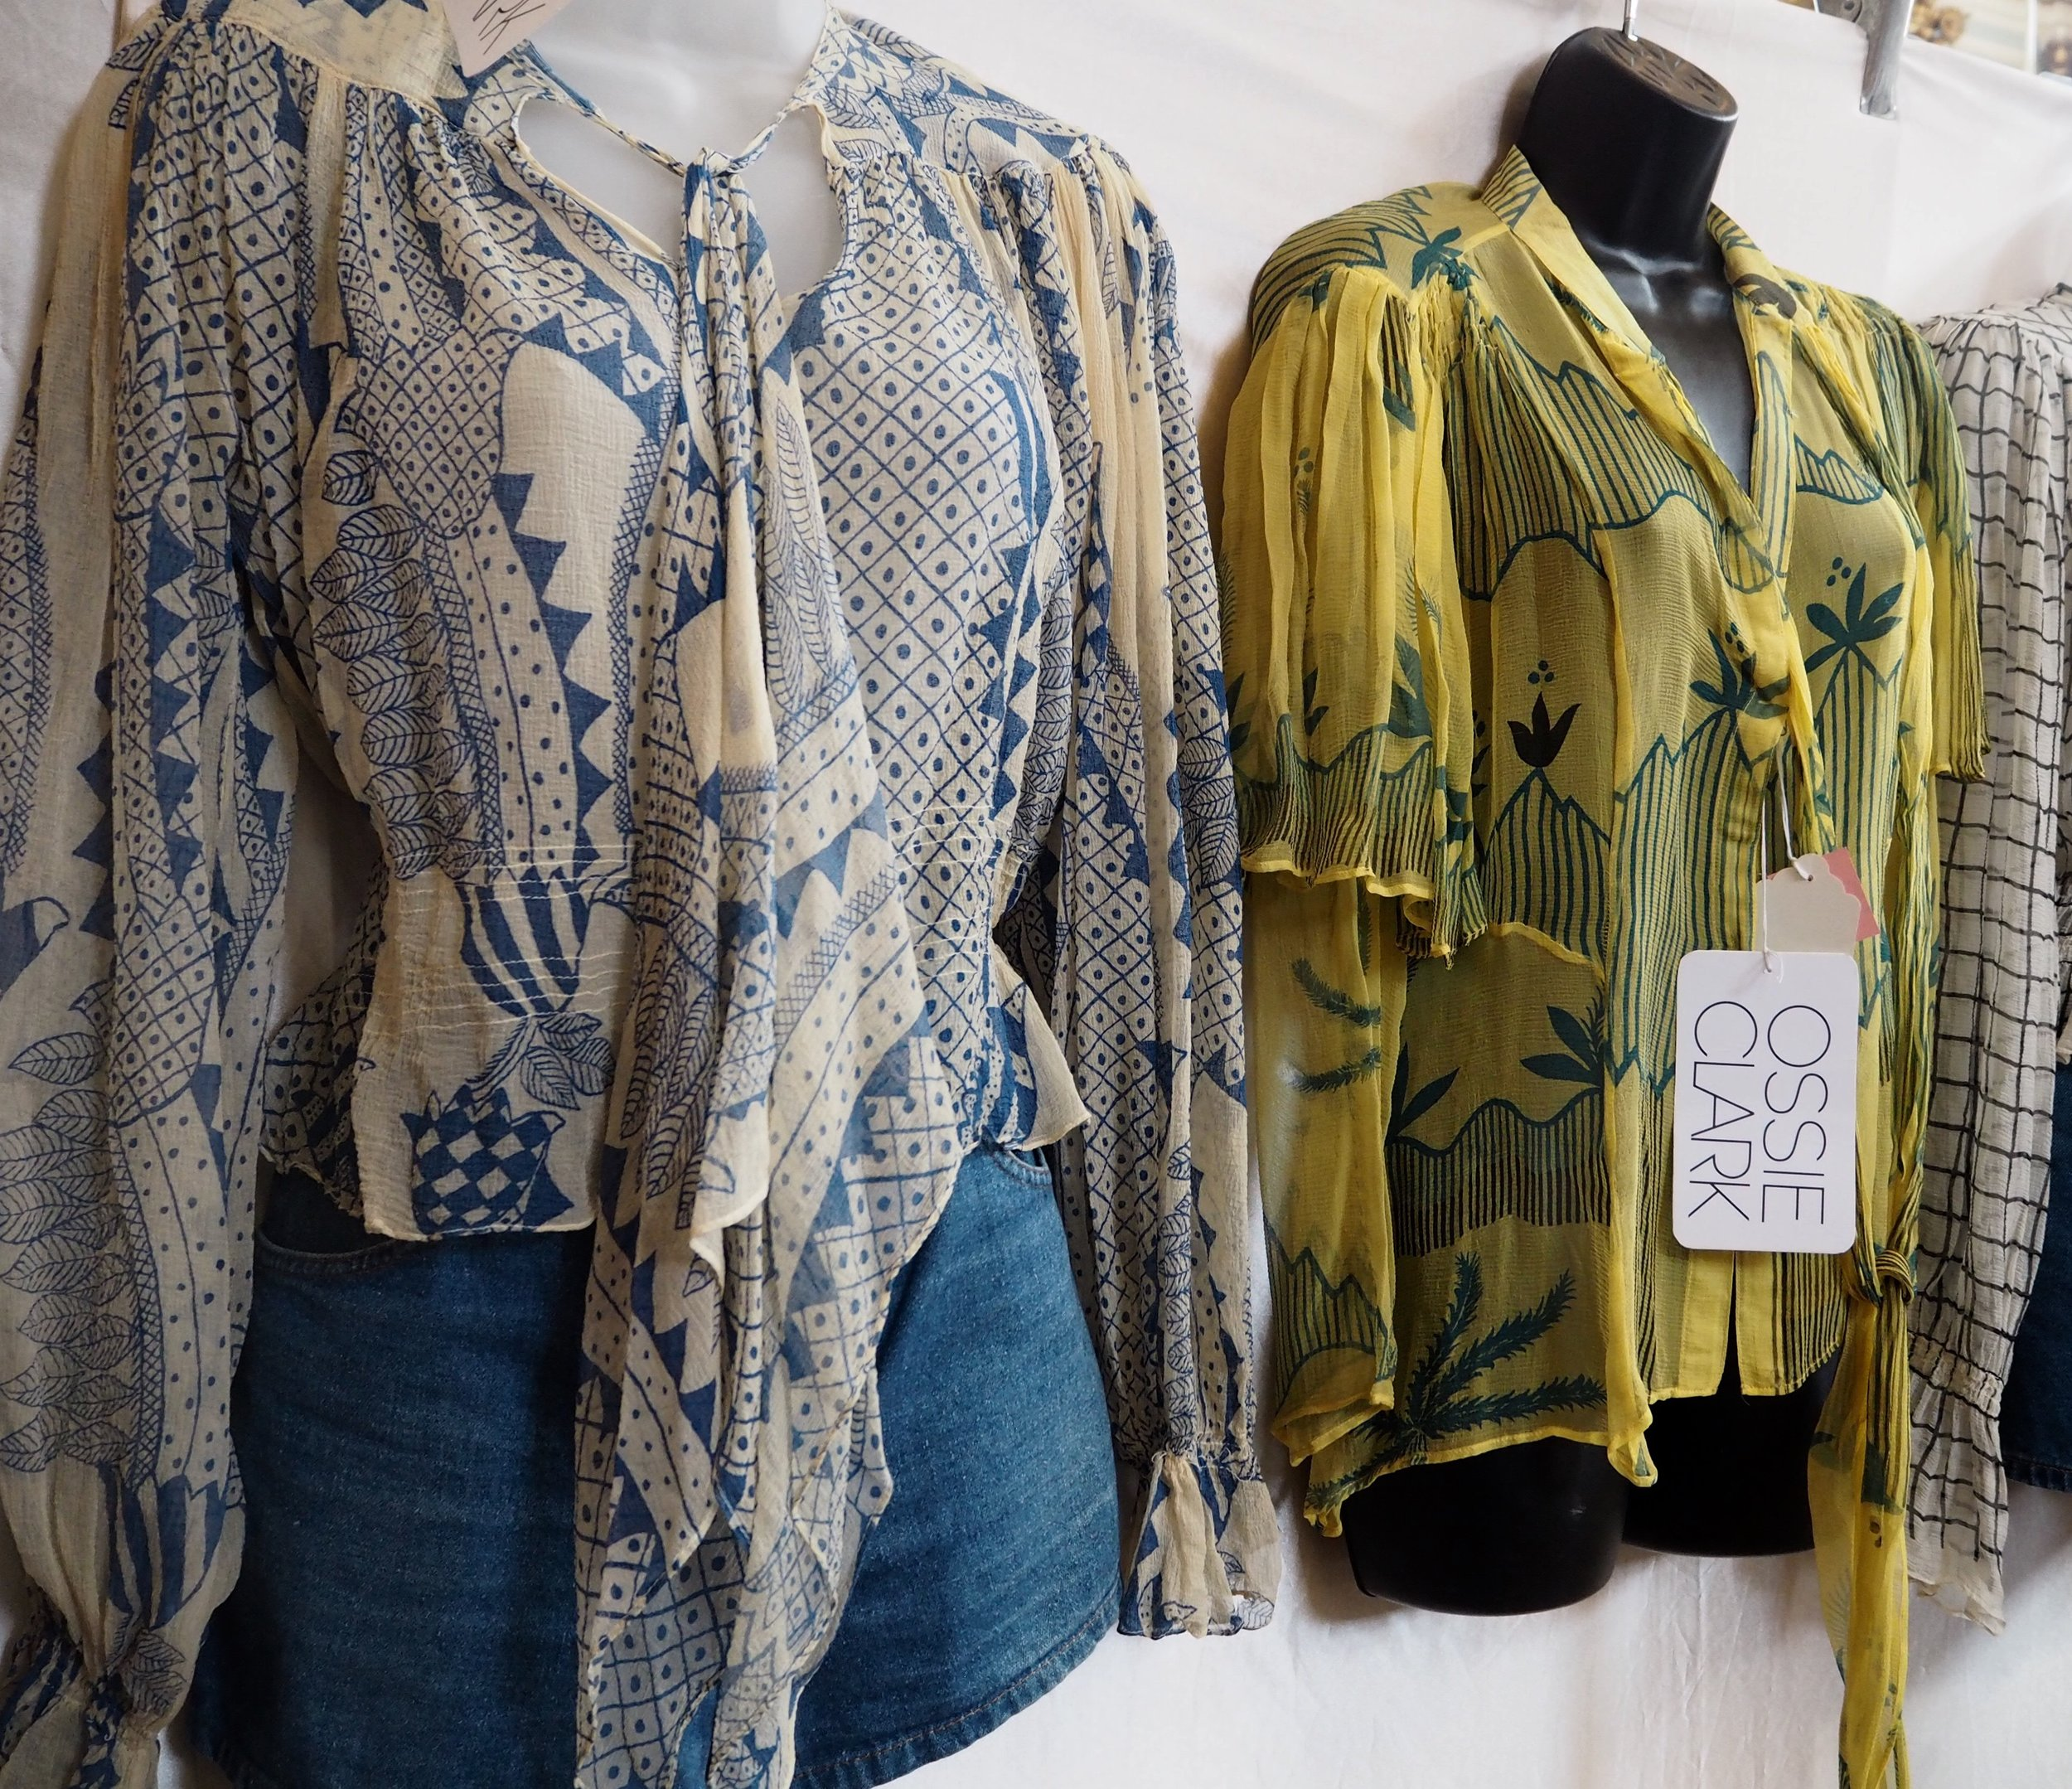 Vintage Ossie Clark blouses with Celia Birtwell prints from  @shlittlesistervintage